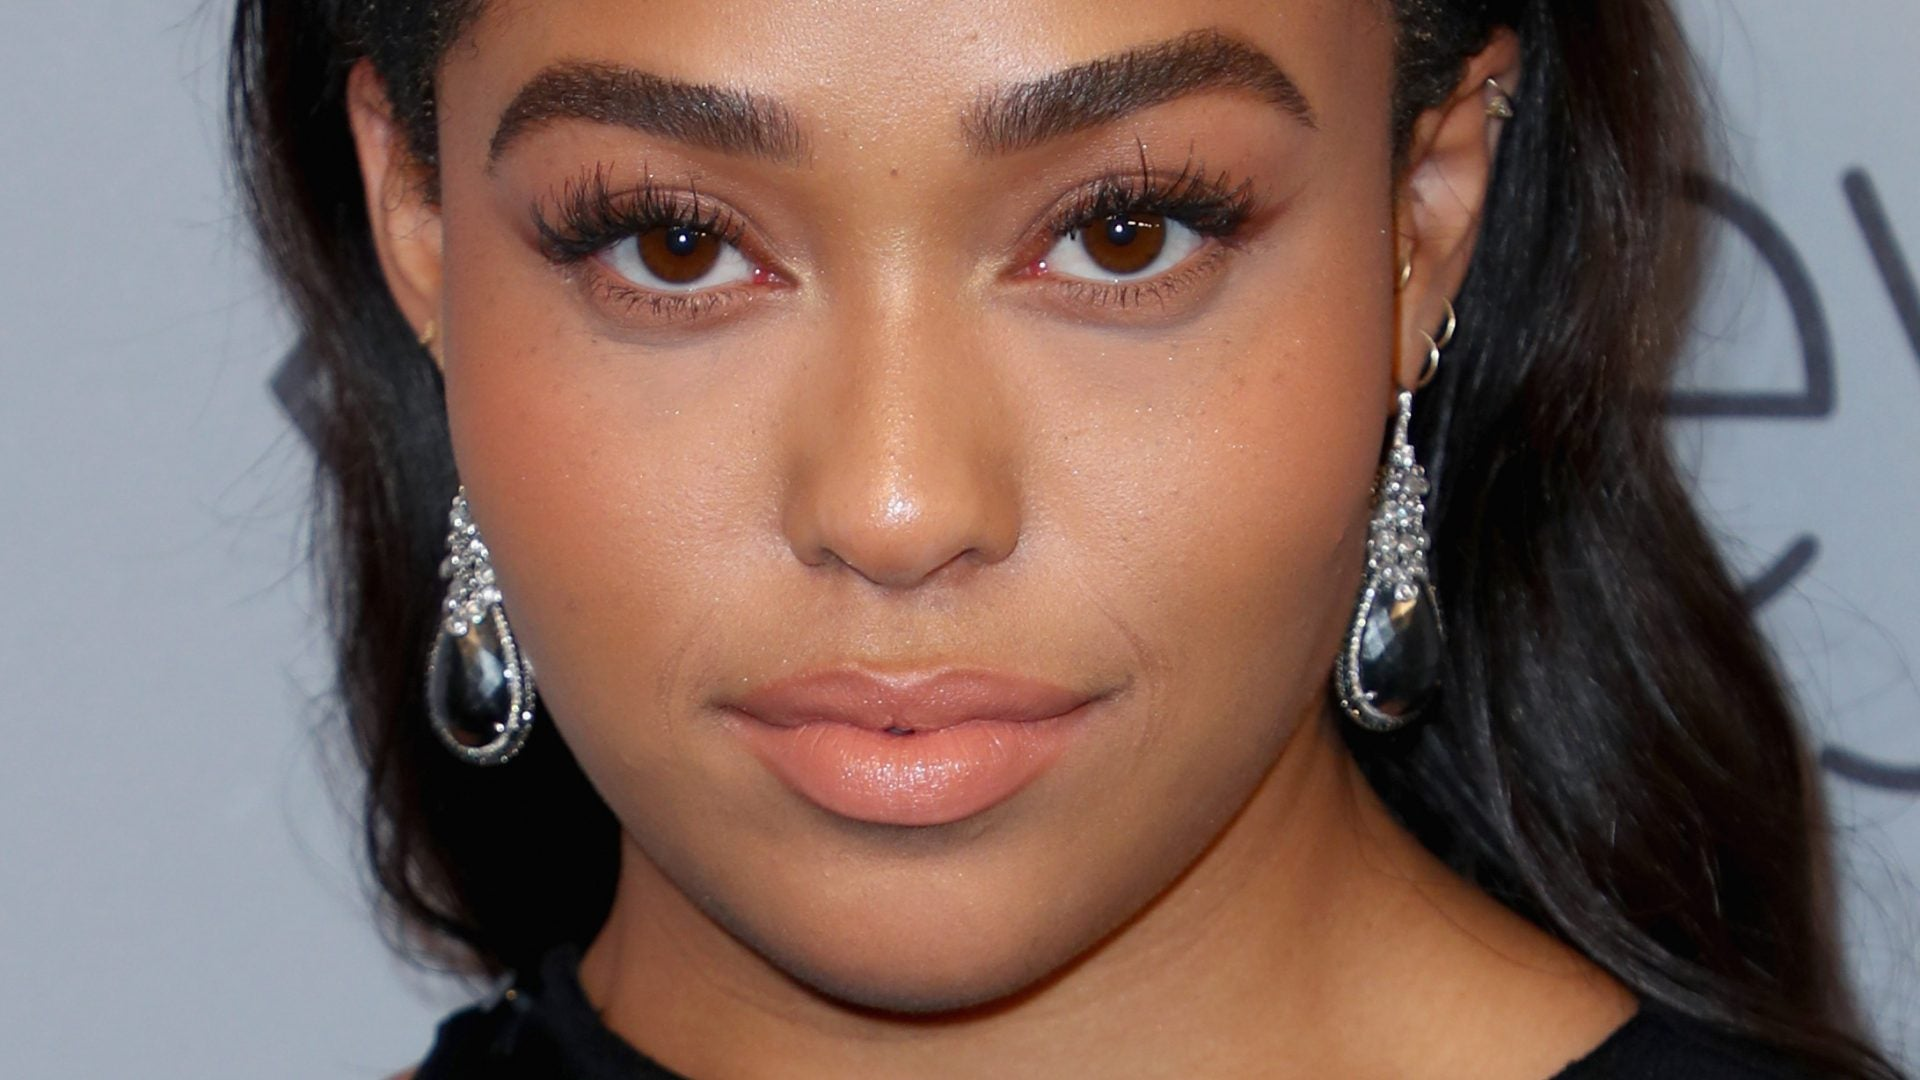 Jordyn Woods Shows Off Her Symmetrical Face, And Fans Are Stunned – Check Out Her Video